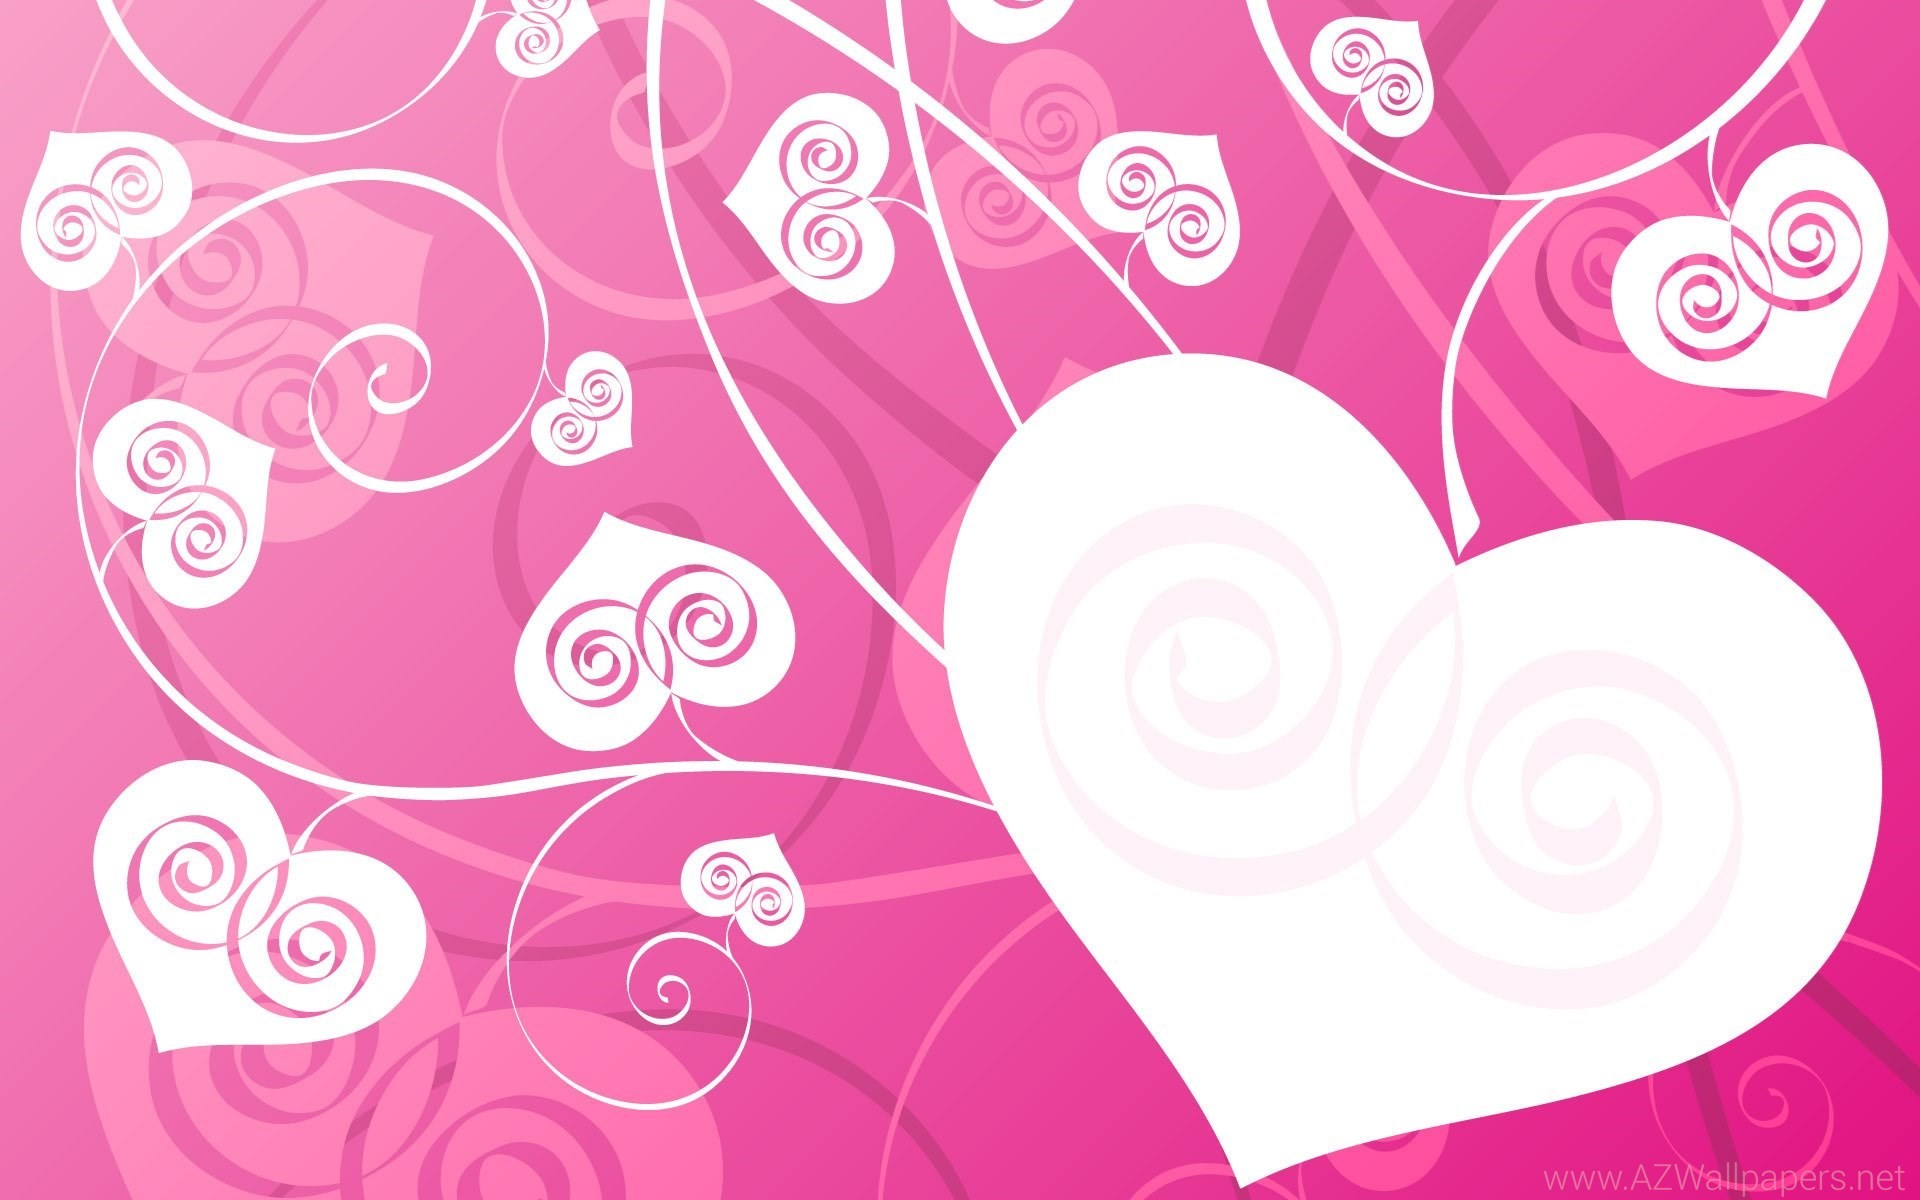 Love Pink Vs Wallpapers For Iphone Kemecer.com